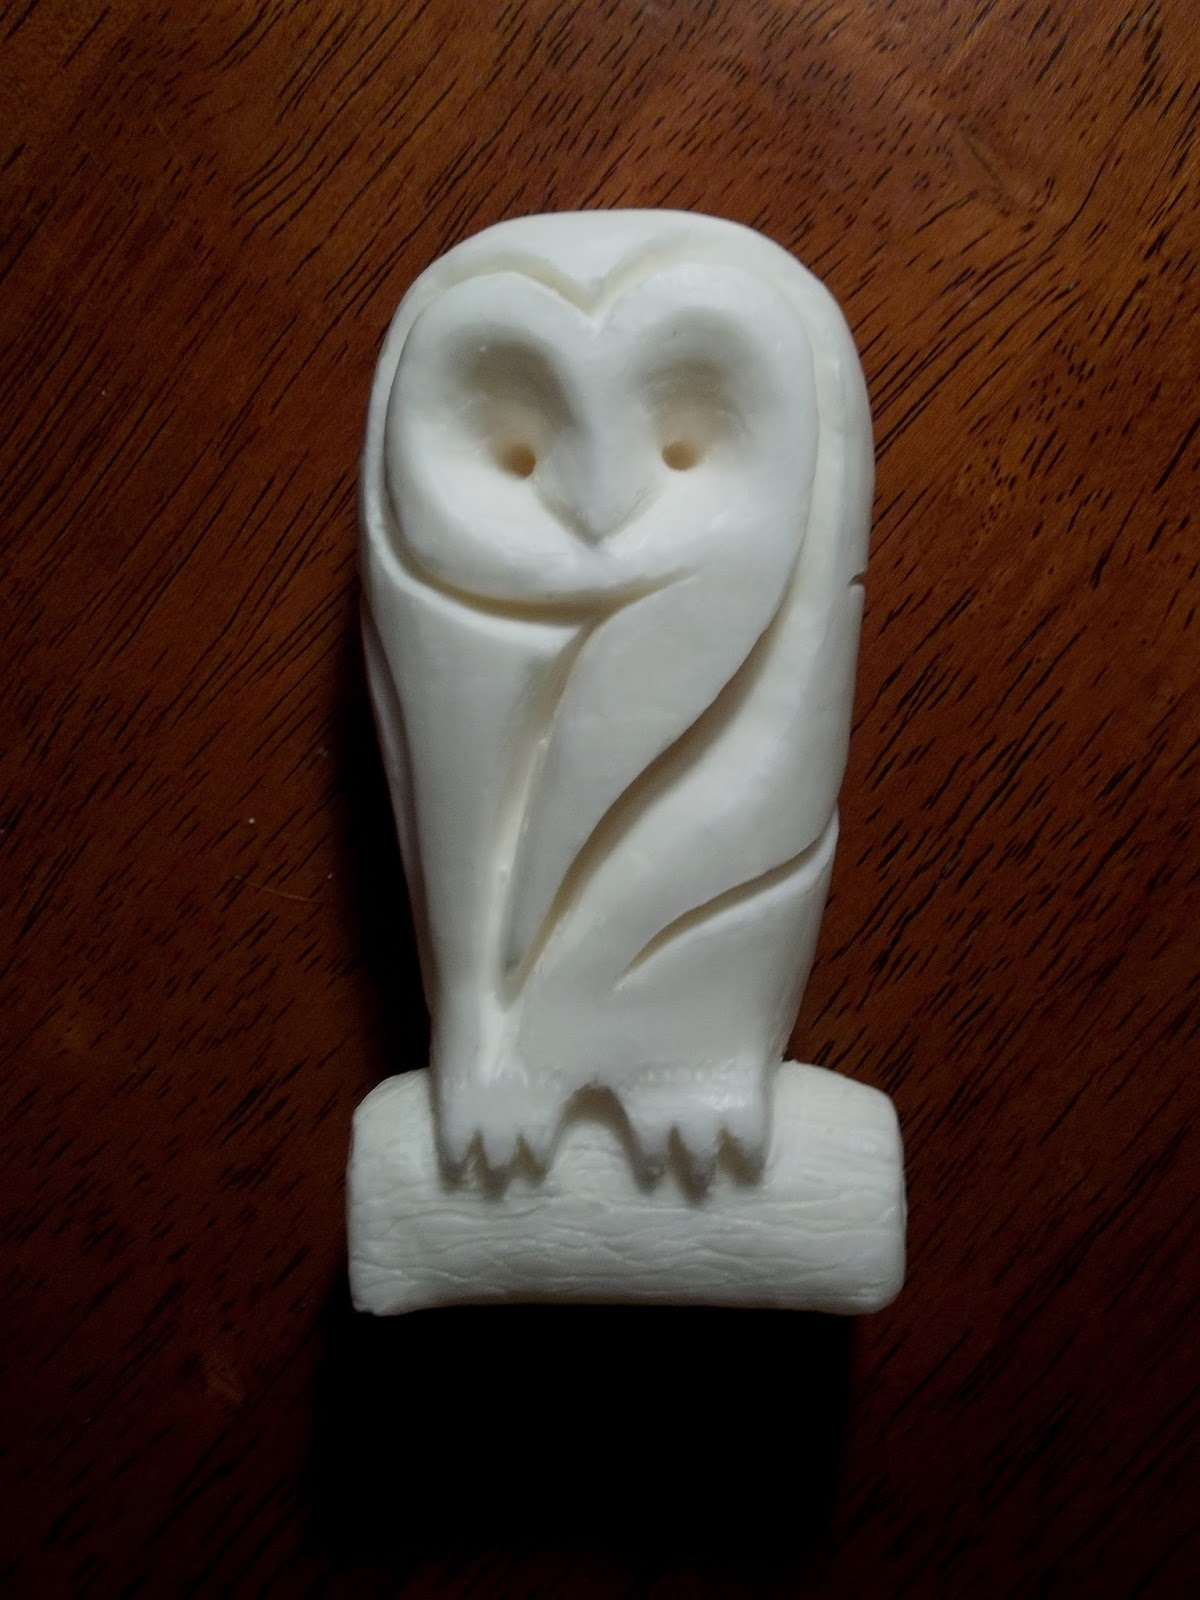 Soap carving carving and soaps on pinterest for Soap whittling templates